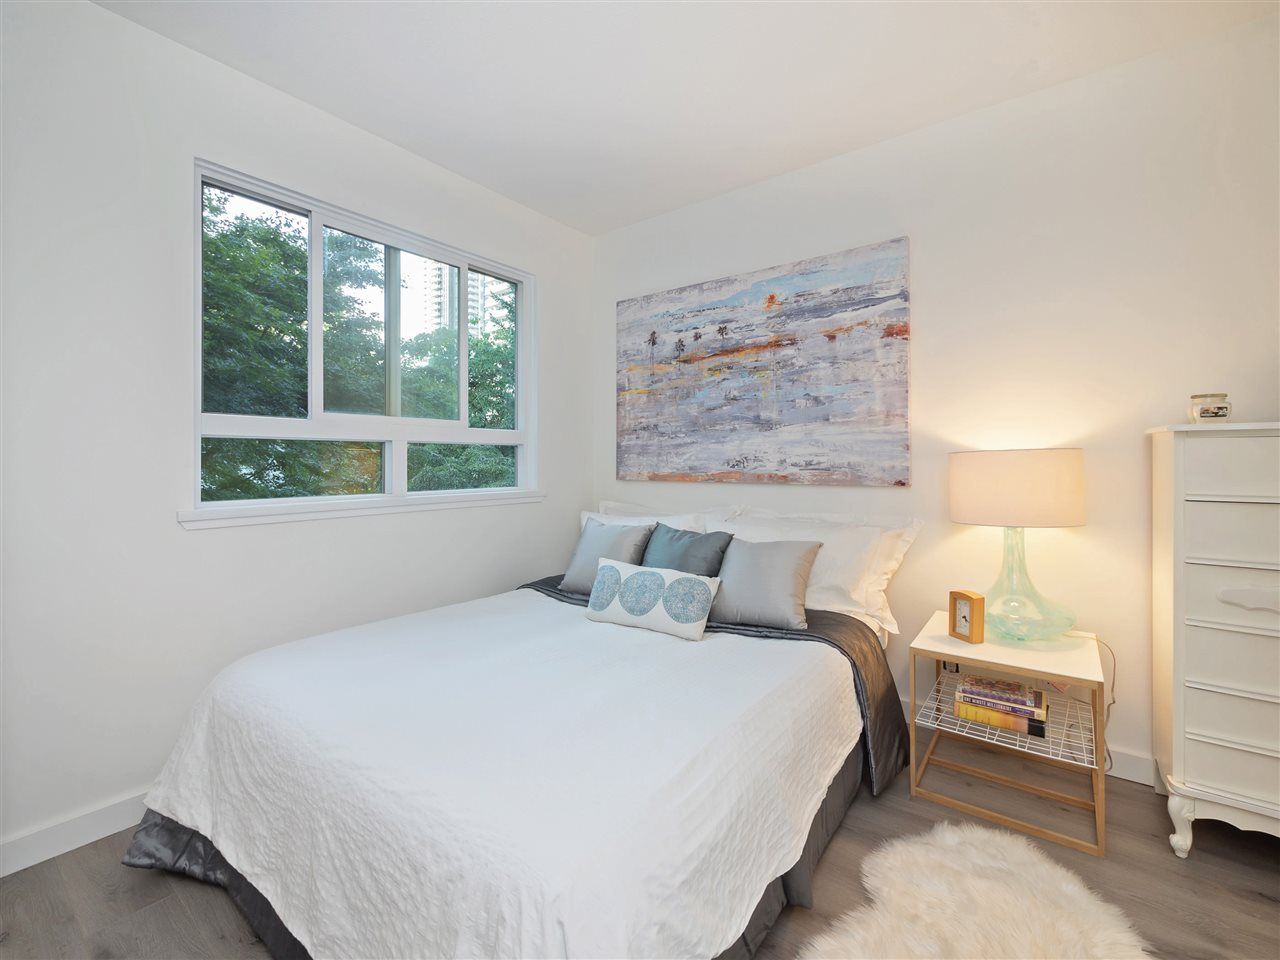 Condo Apartment at 211 1148 WESTWOOD STREET, Unit 211, Coquitlam, British Columbia. Image 9